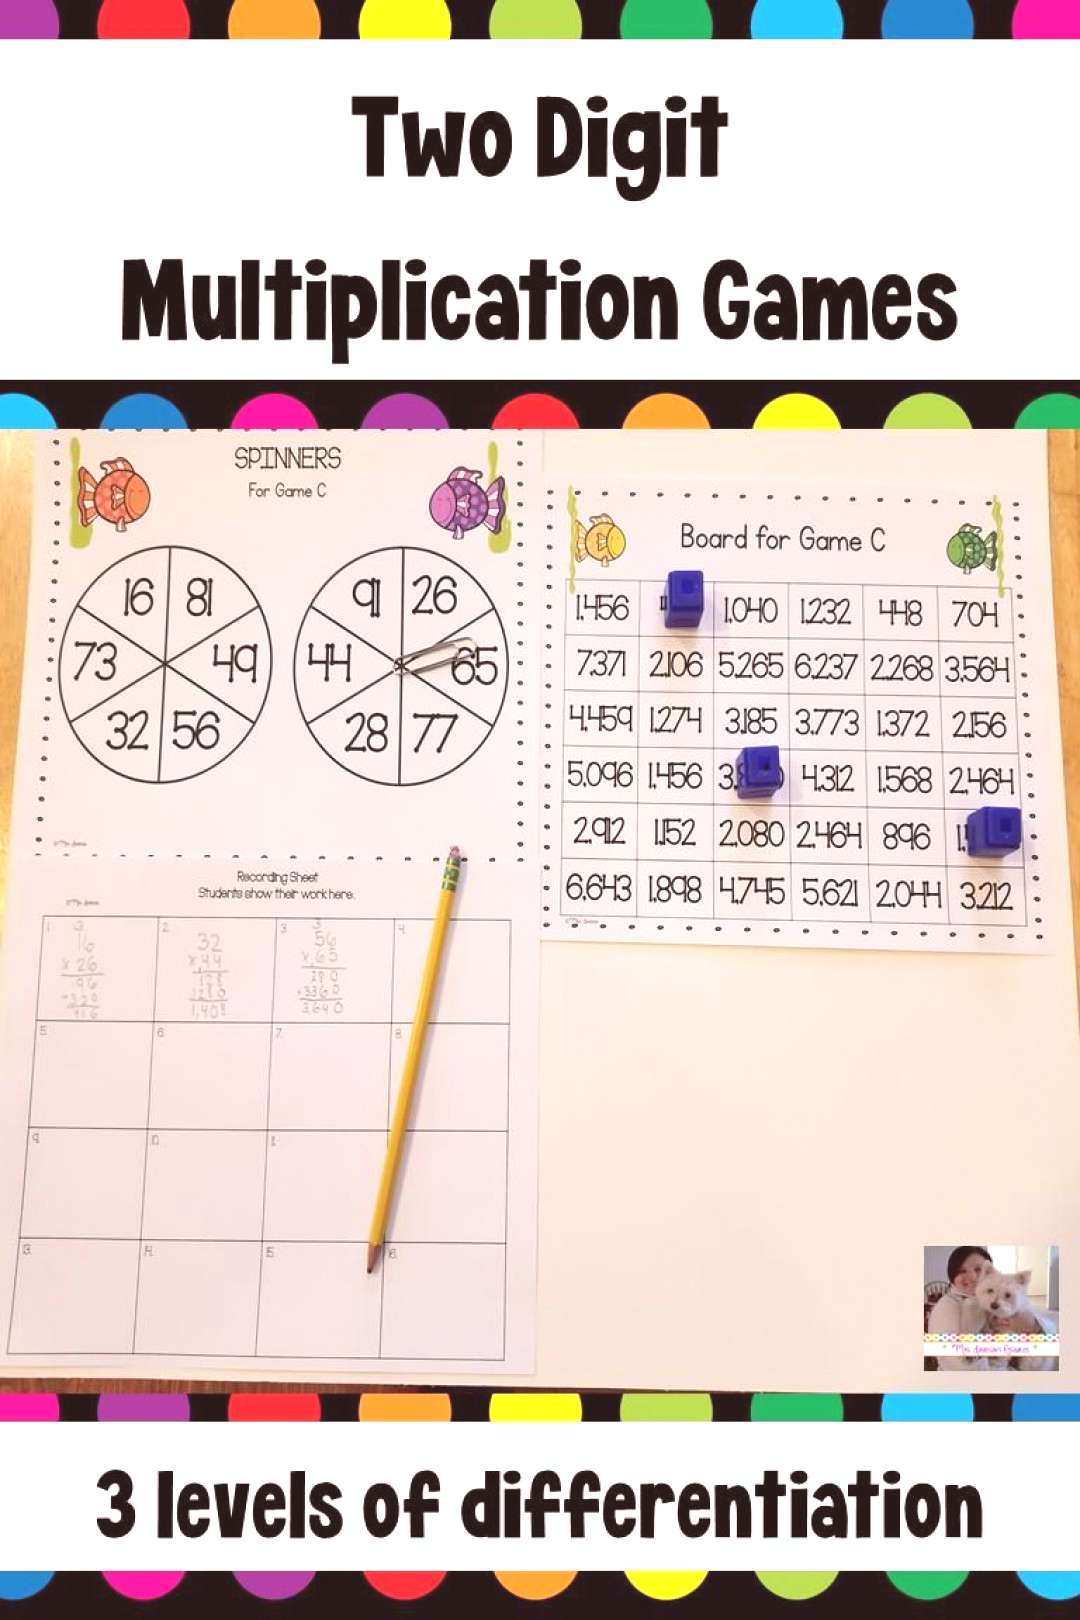 Two Digit Multiplication Spinner Games  This game is a fun, hands-on activity that engages students